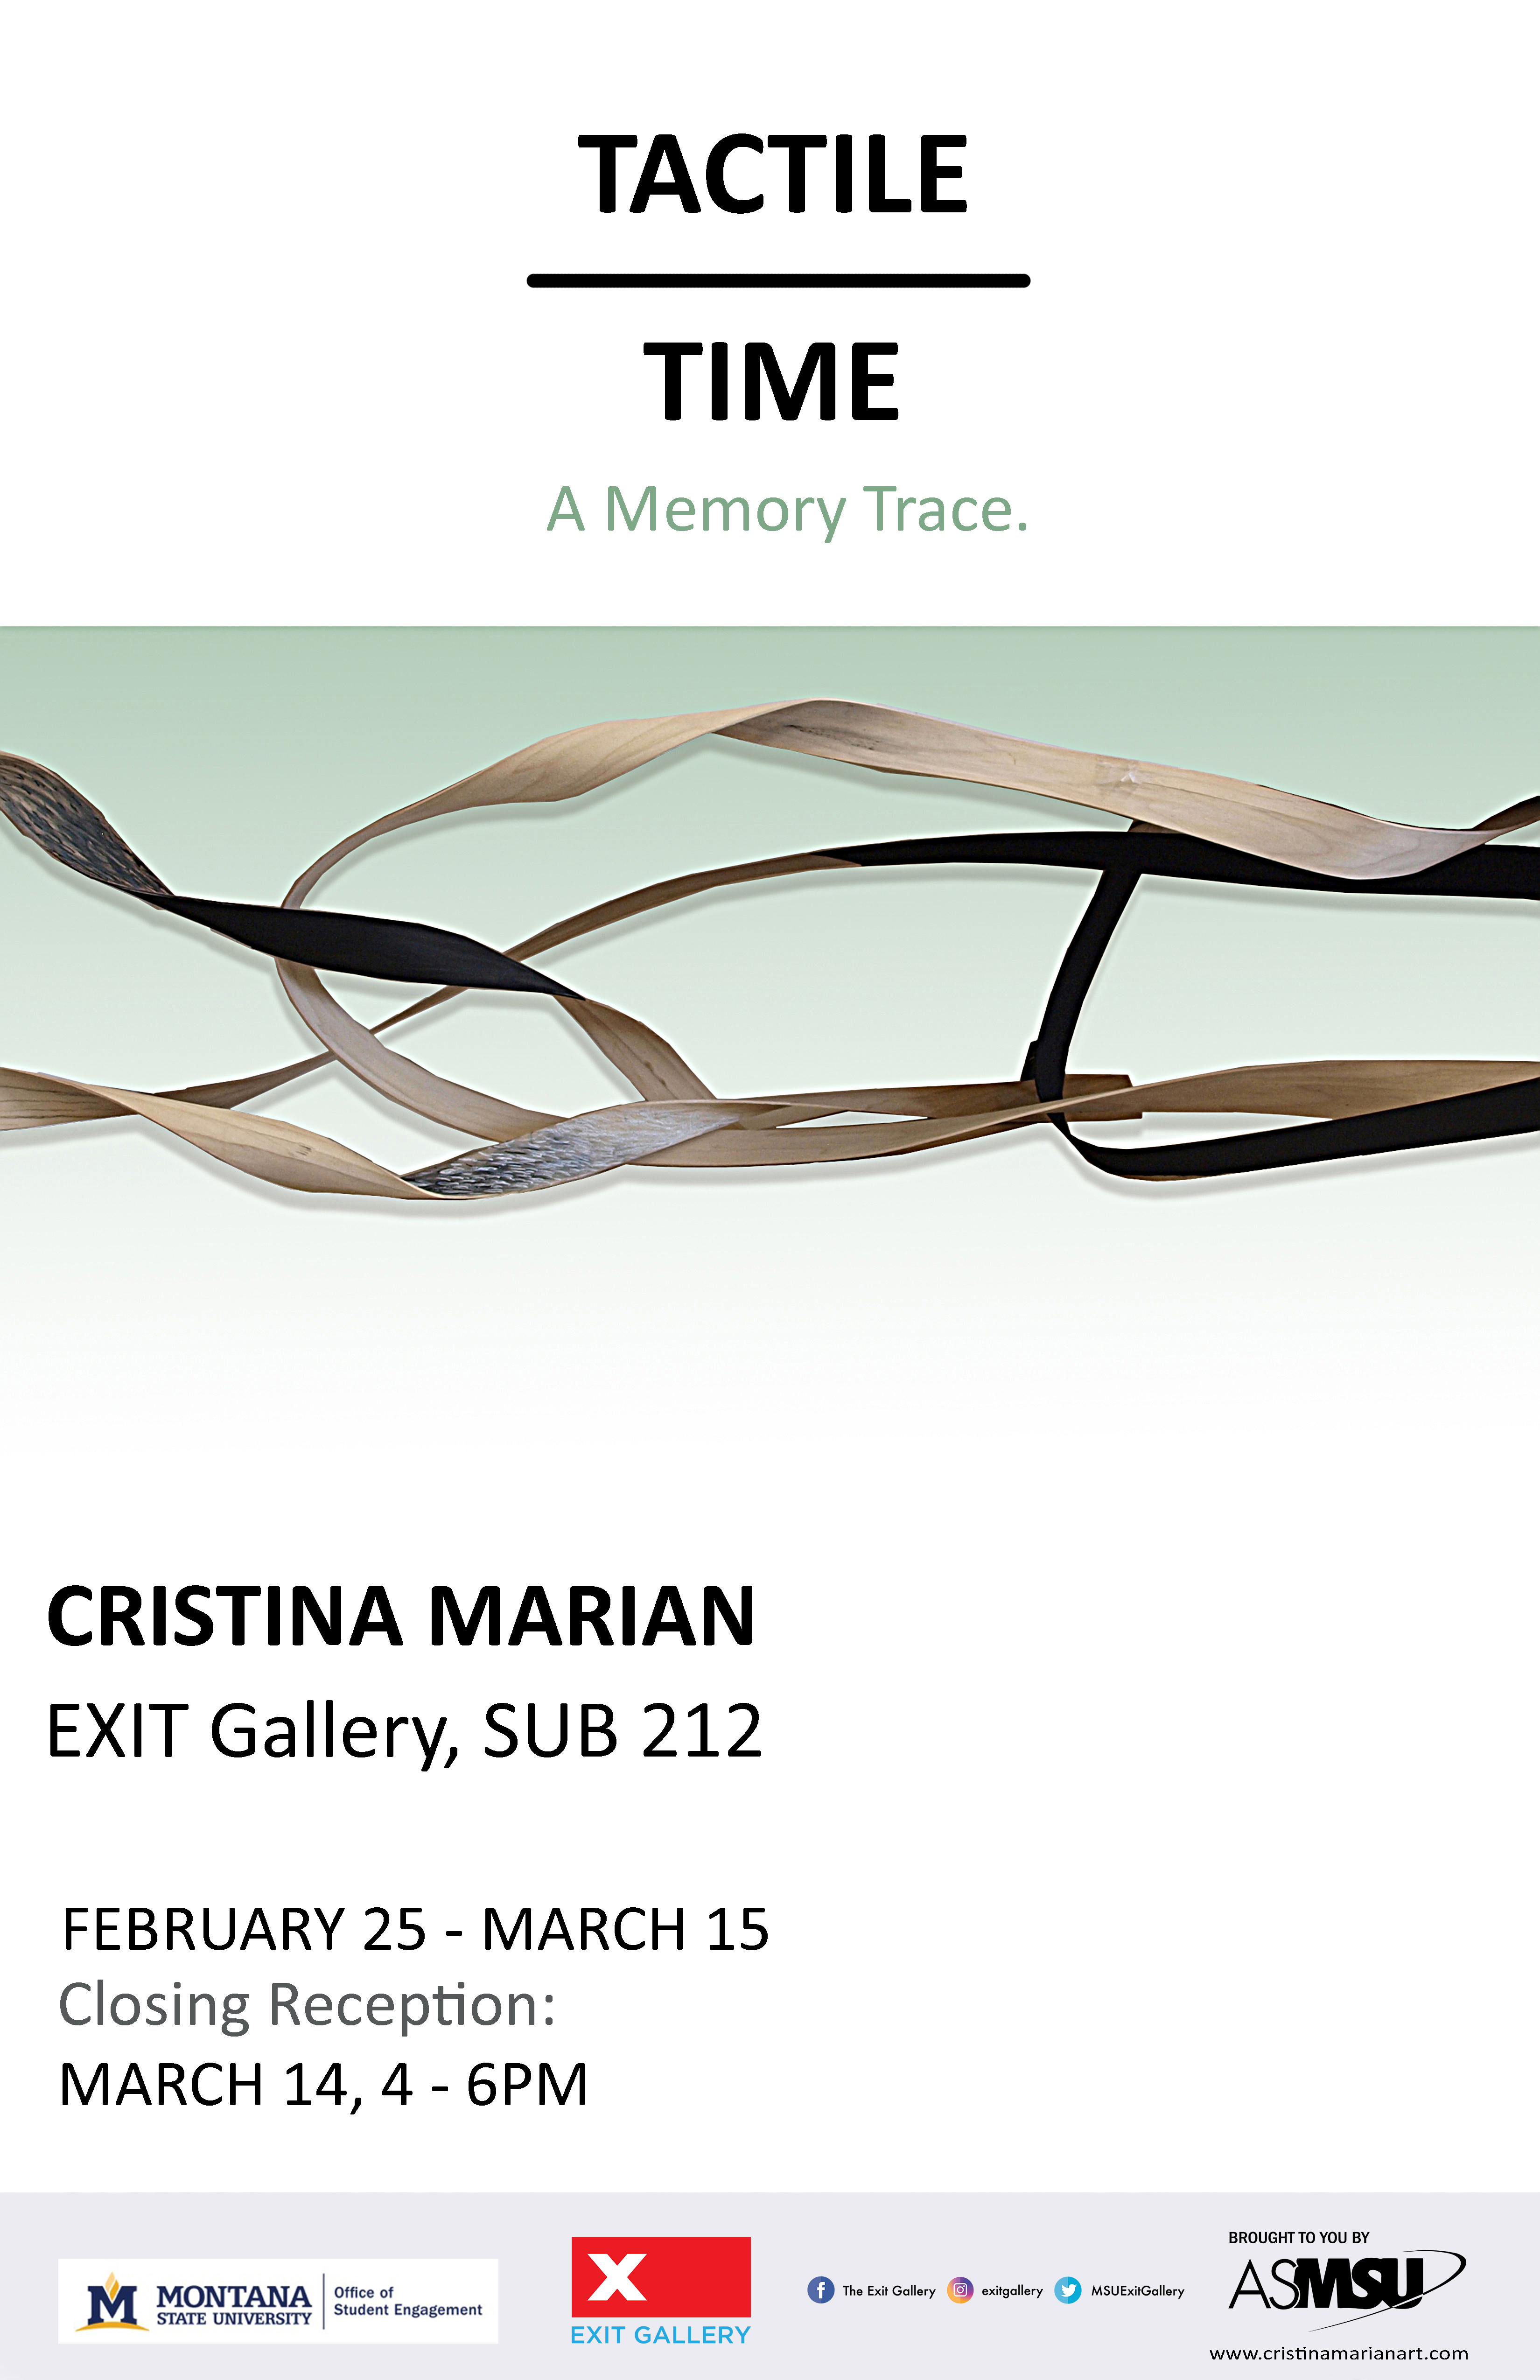 tactile time. Cristina marian feb 25-march 15 closign reception march 14 4-6pm